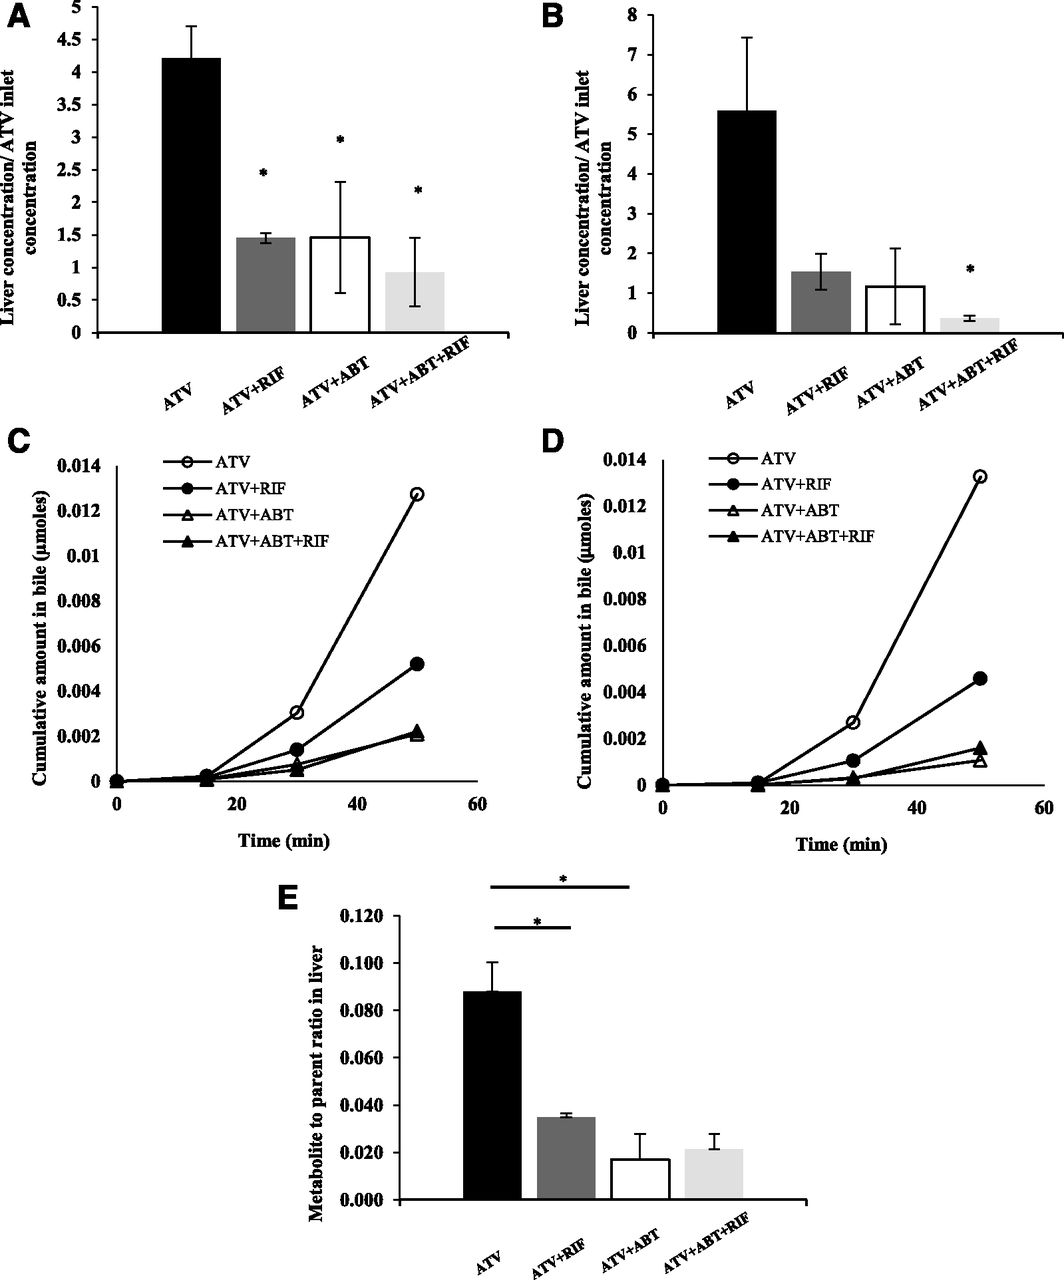 Intracellular Unbound Atorvastatin Concentrations in the Presence of on